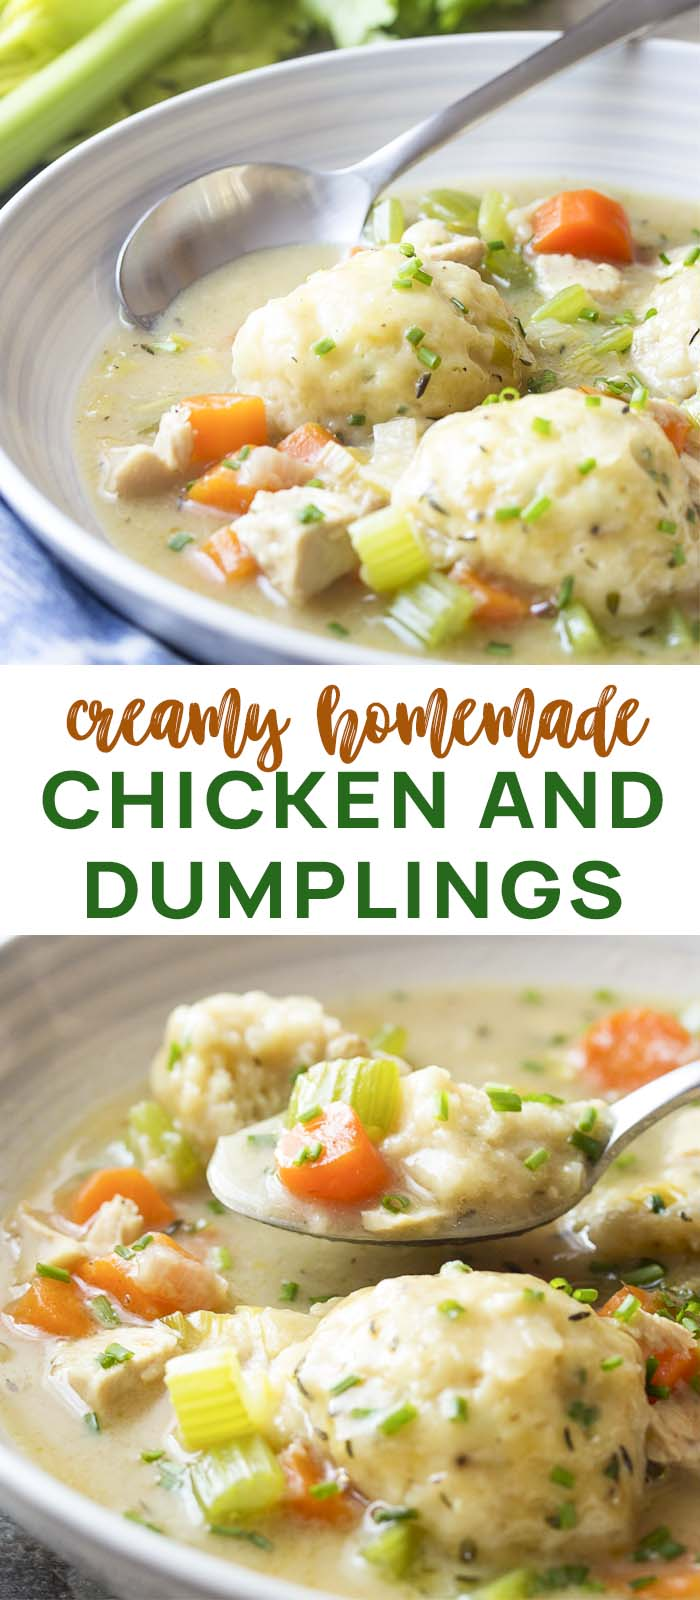 Creamy comfort food from scratch! You'll love this classic recipe for old-fashioned homemade chicken and dumplings cooked on the stovetop. | justalittlebitofbacon.com #comfortfood #chickendinner #winterrecipes #chickenanddumplings #chickenstew